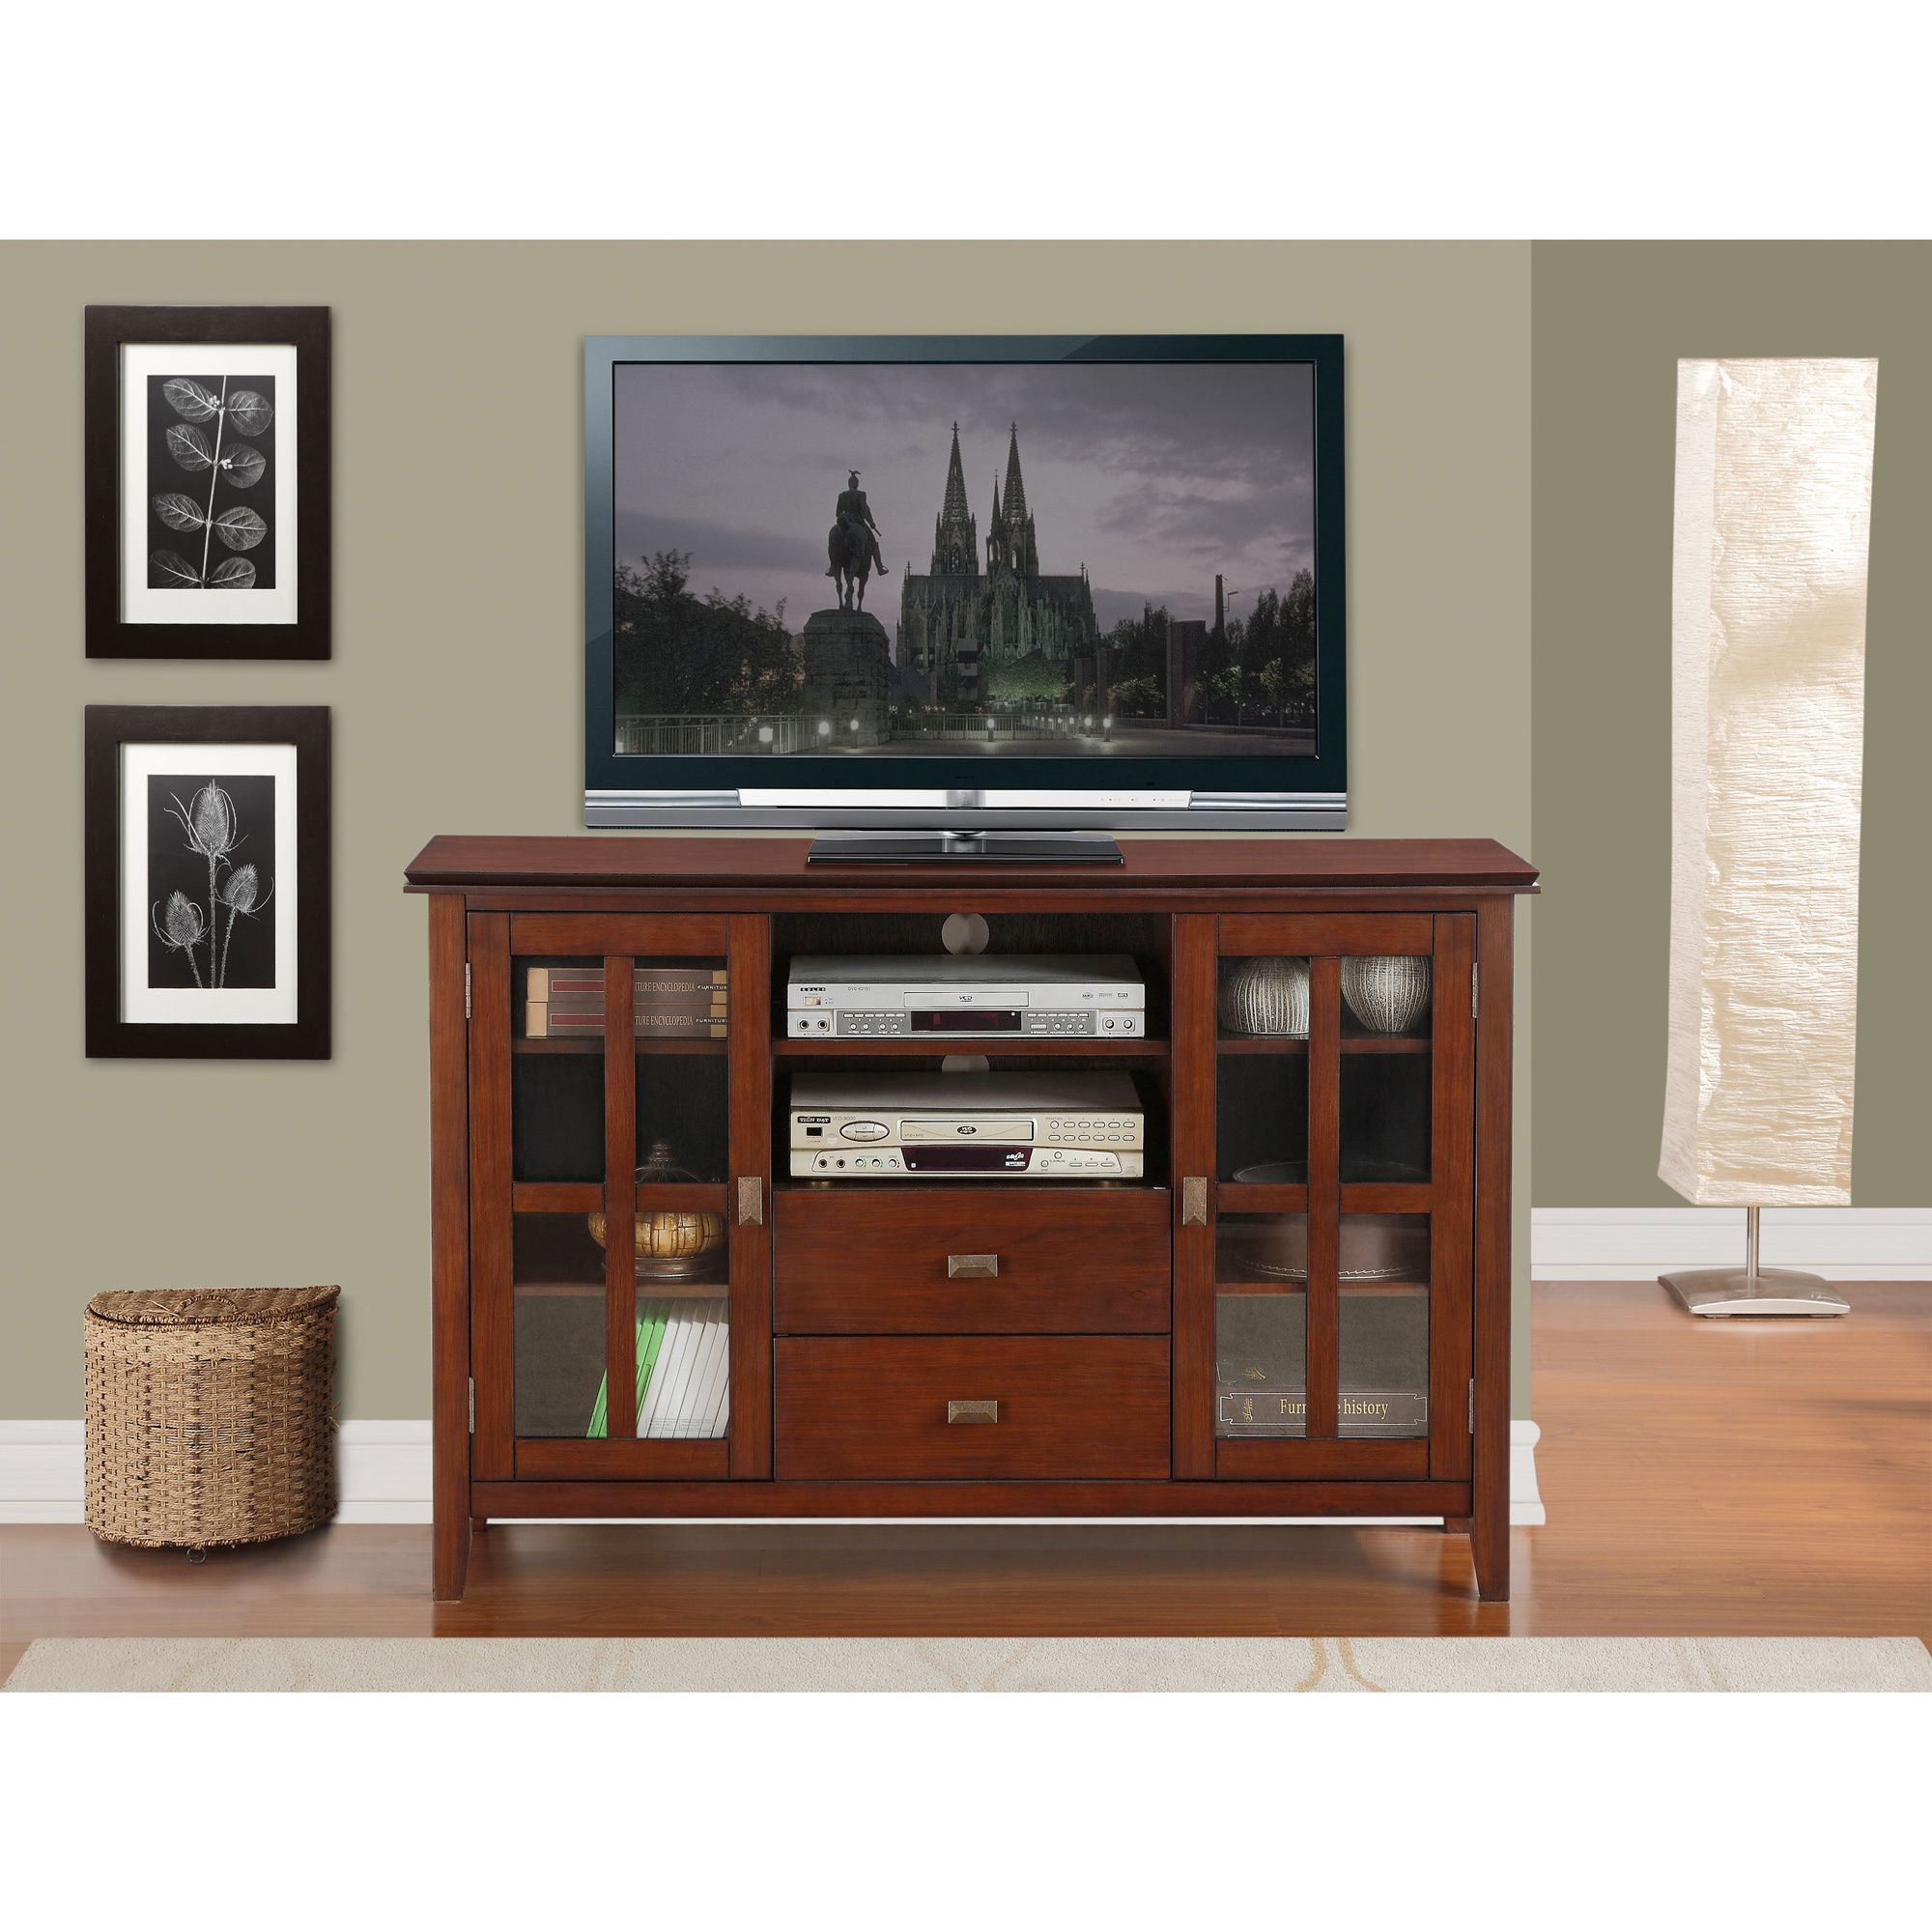 Tall Living Room Cabinets Wyndenhall Stratford Tall Tv Stand For Tvs Up To 60 Inches By